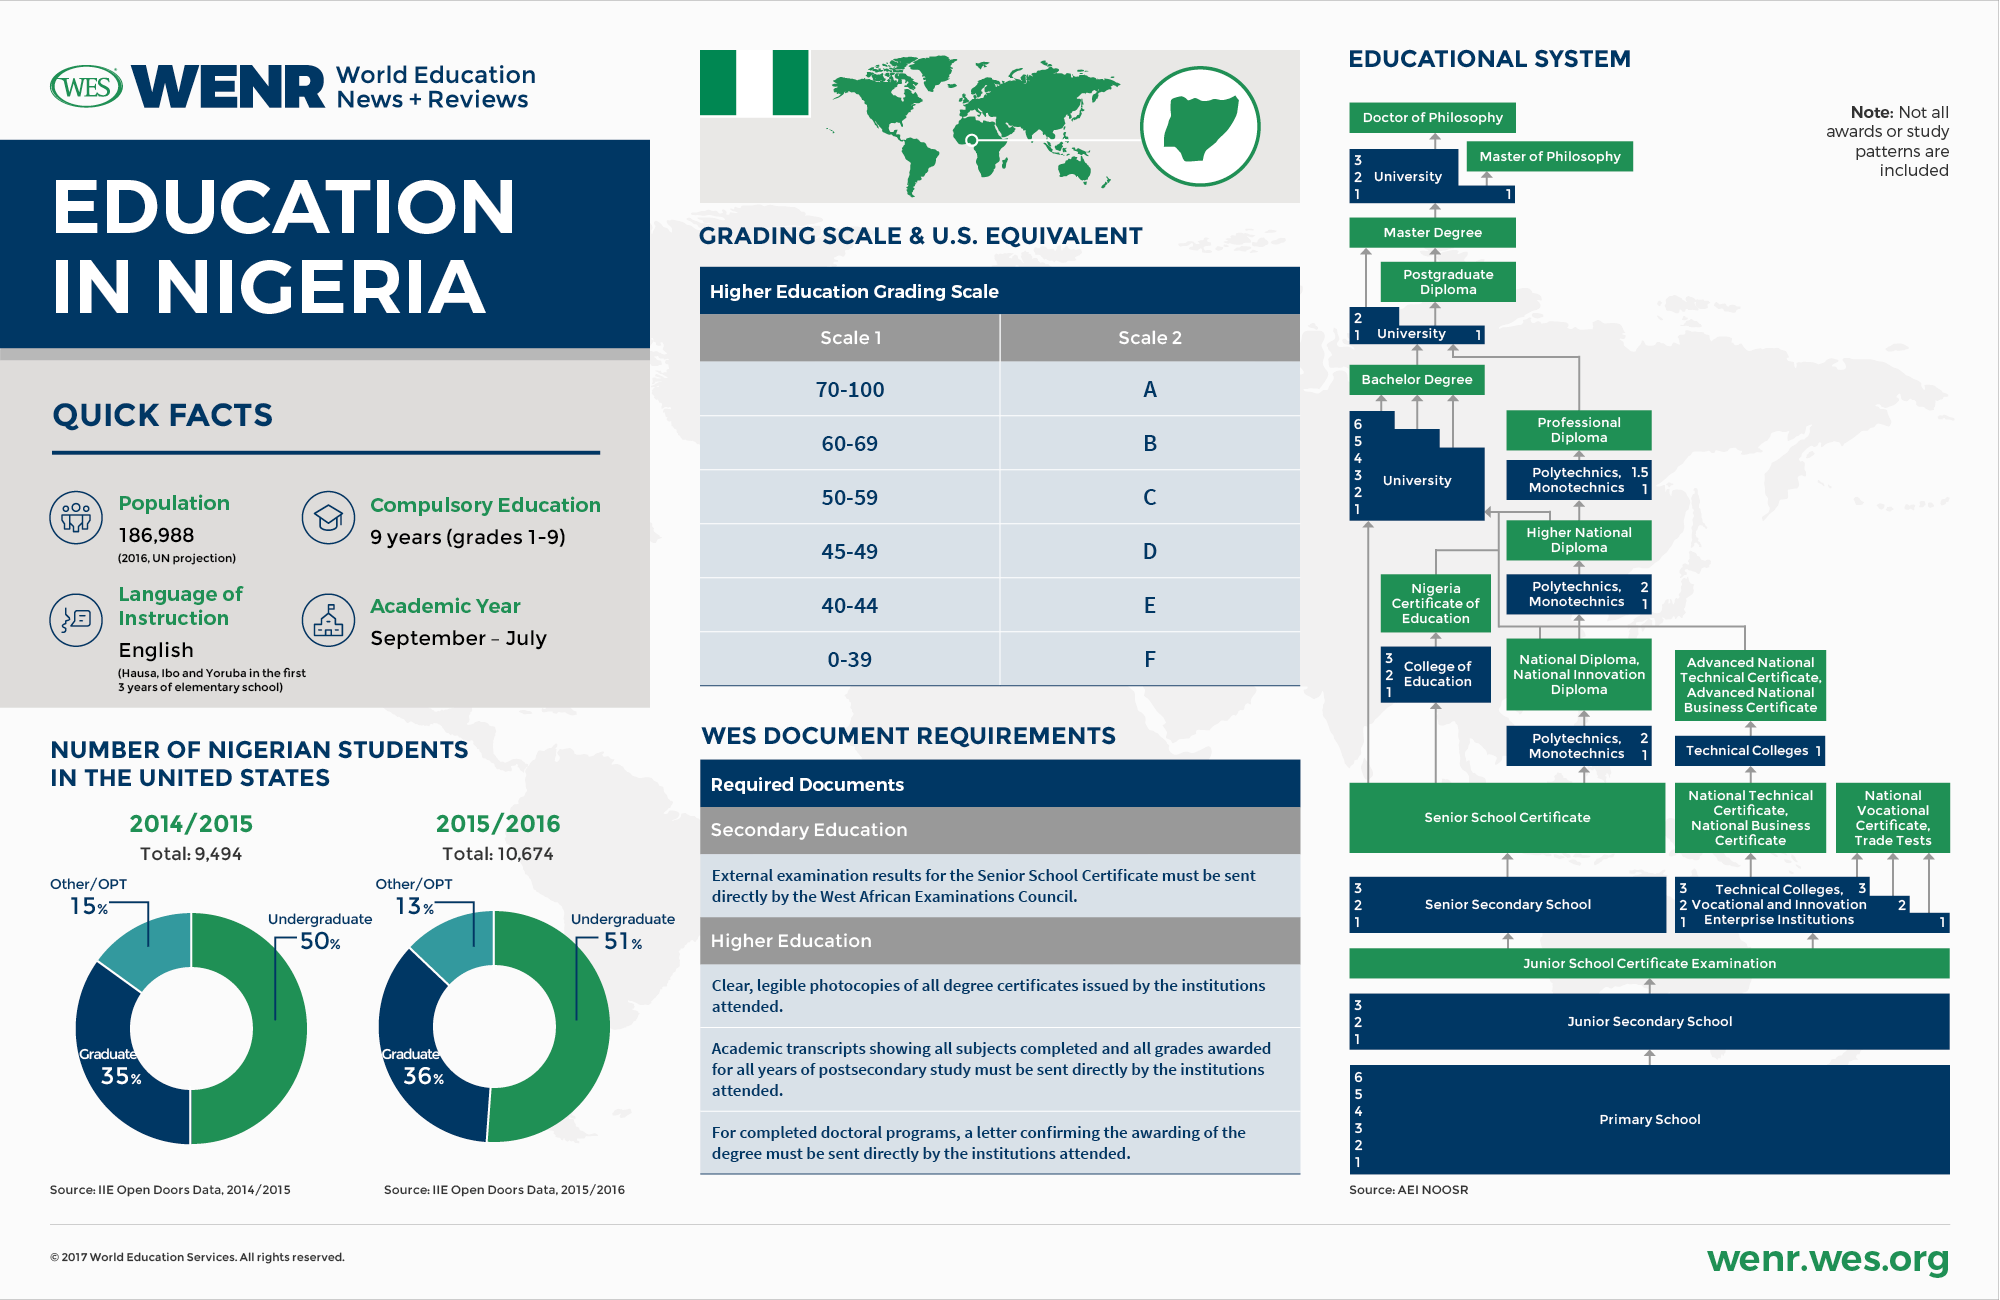 WENR-0317-Country-Profile-Nigeria